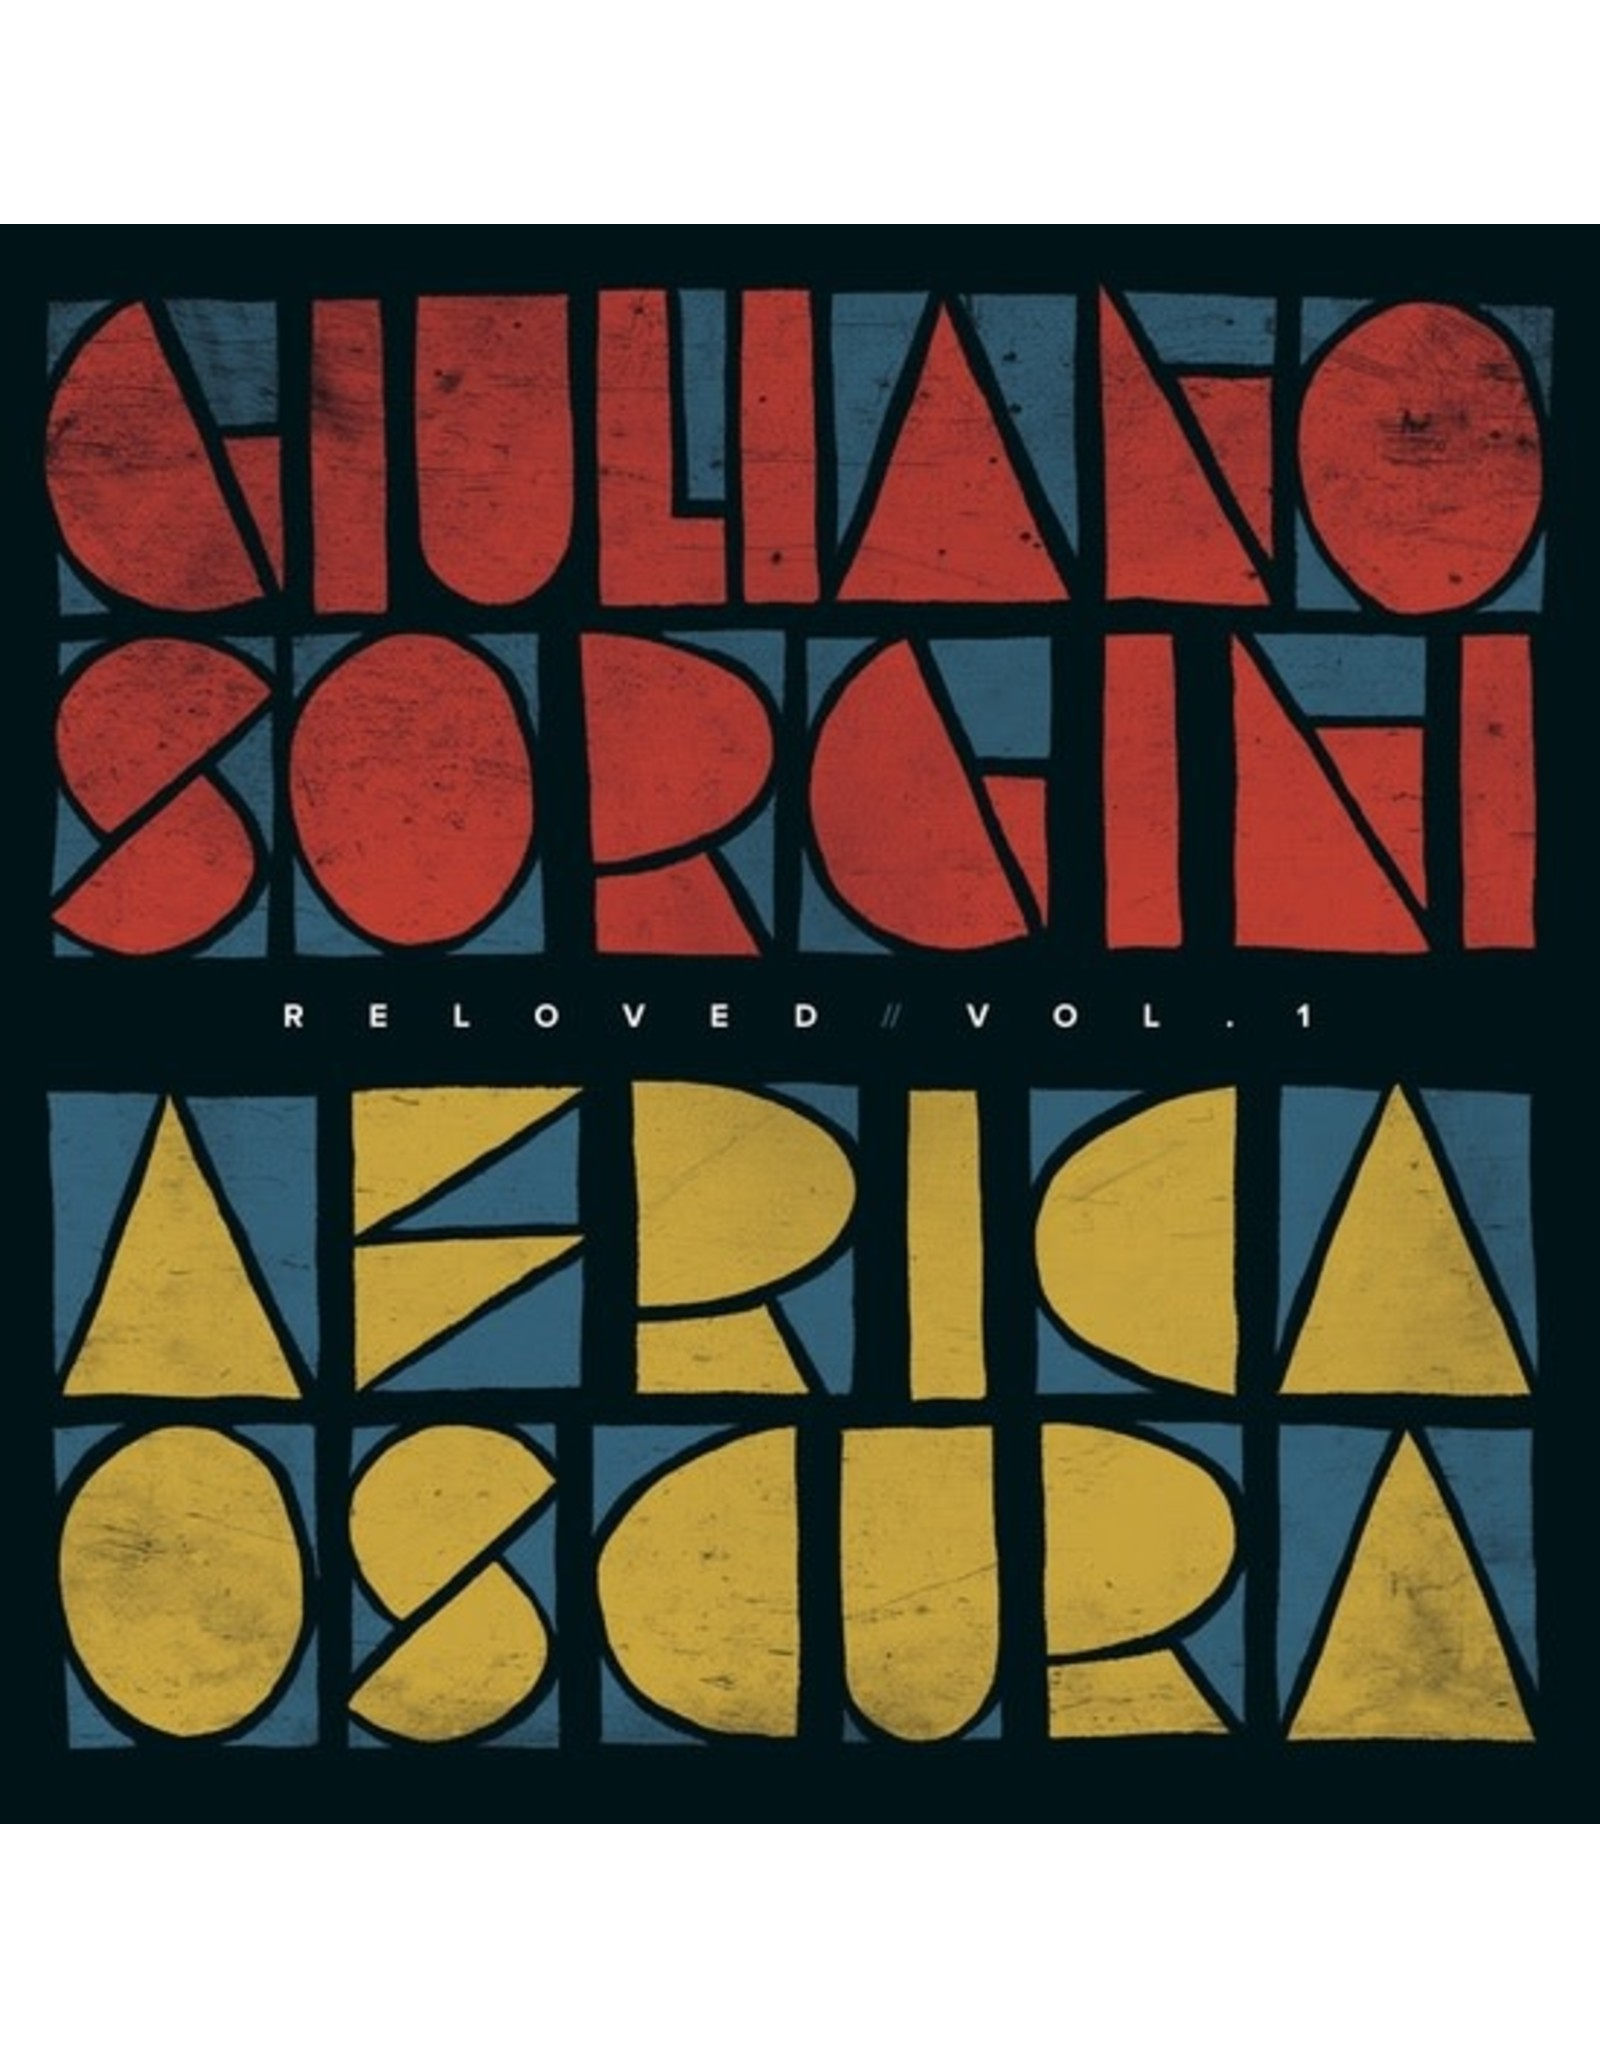 New Vinyl Various - Africa Oscura Reloved Vol. 1 12""